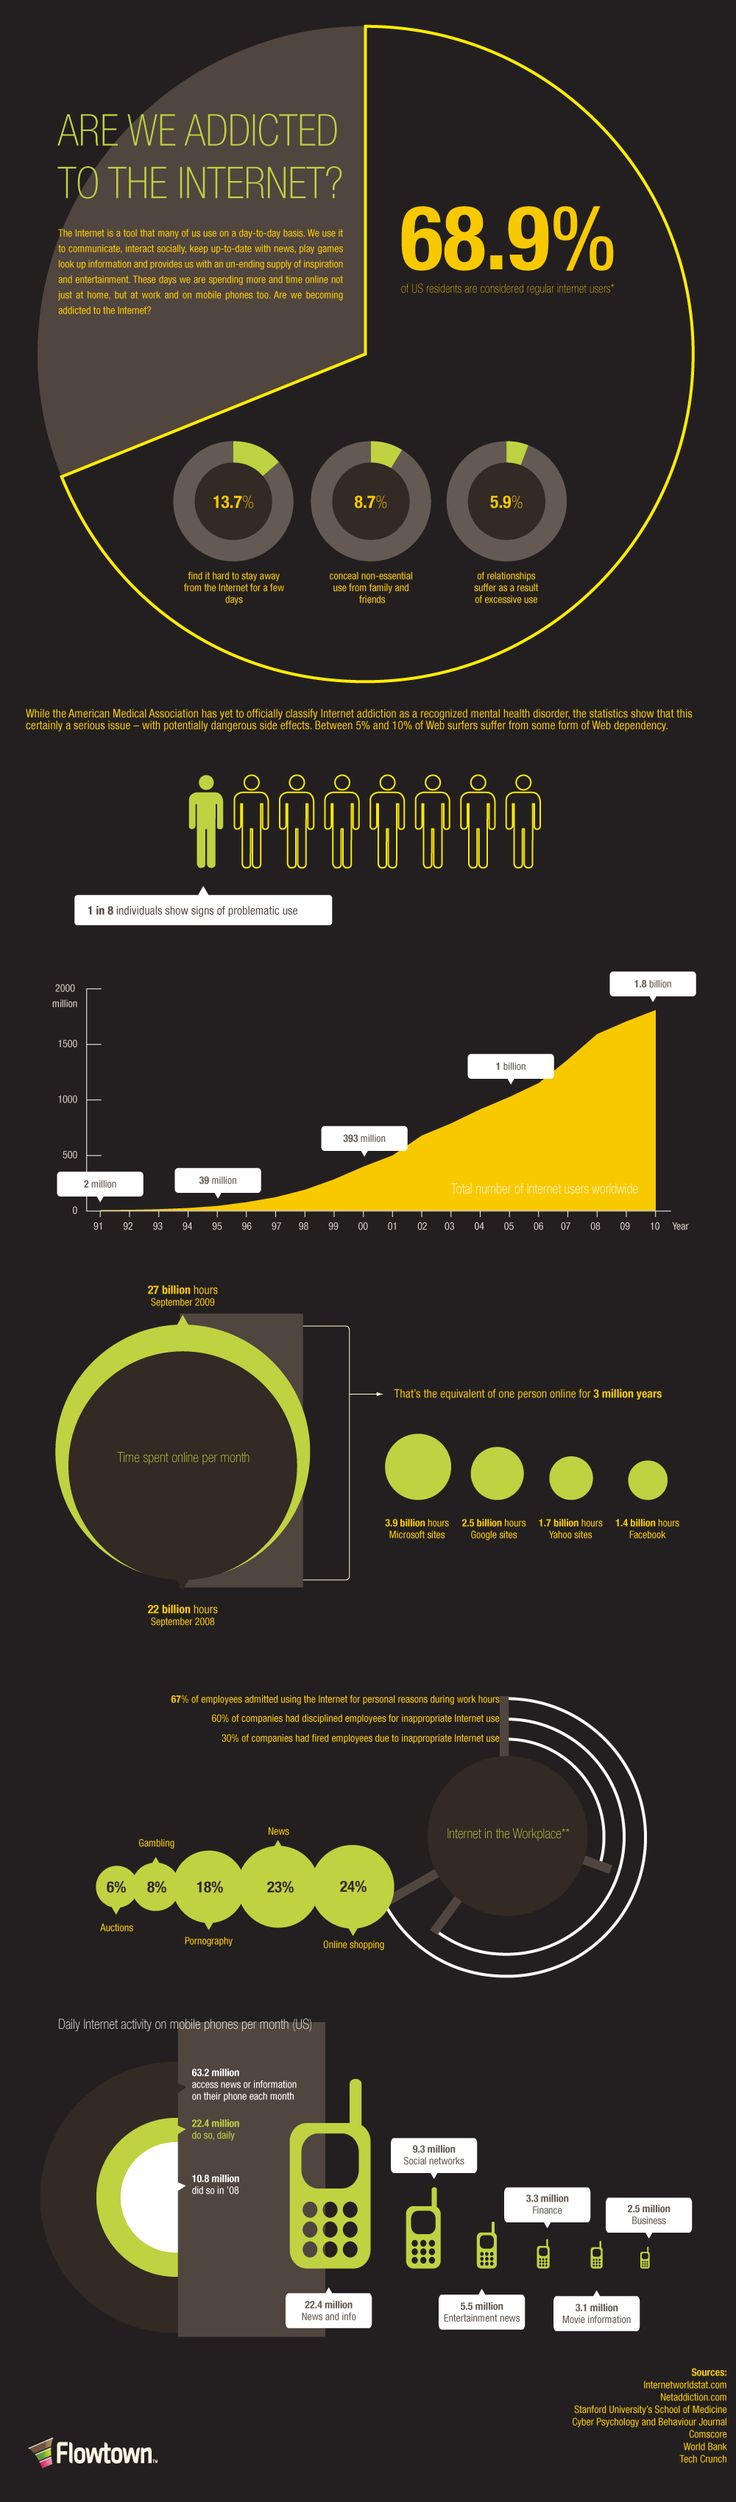 Internet_Addiction_Infographic.png (1000×3400)